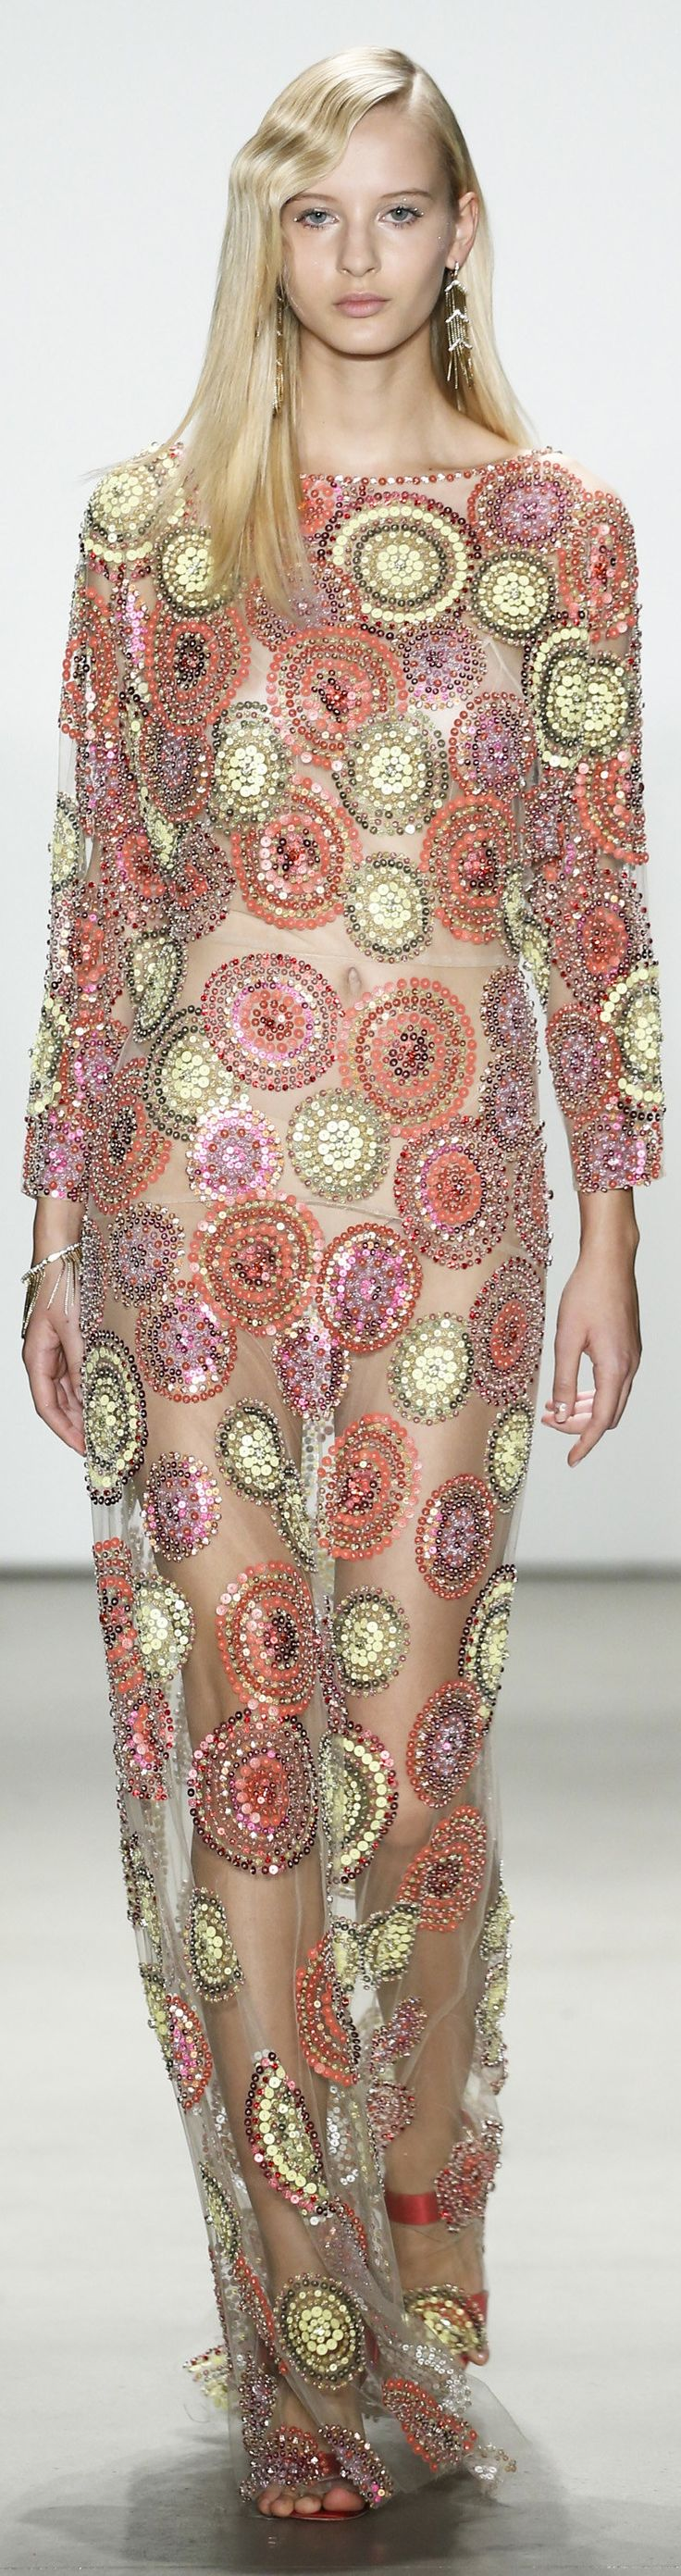 best dresses images on pinterest high fashion fashion show and